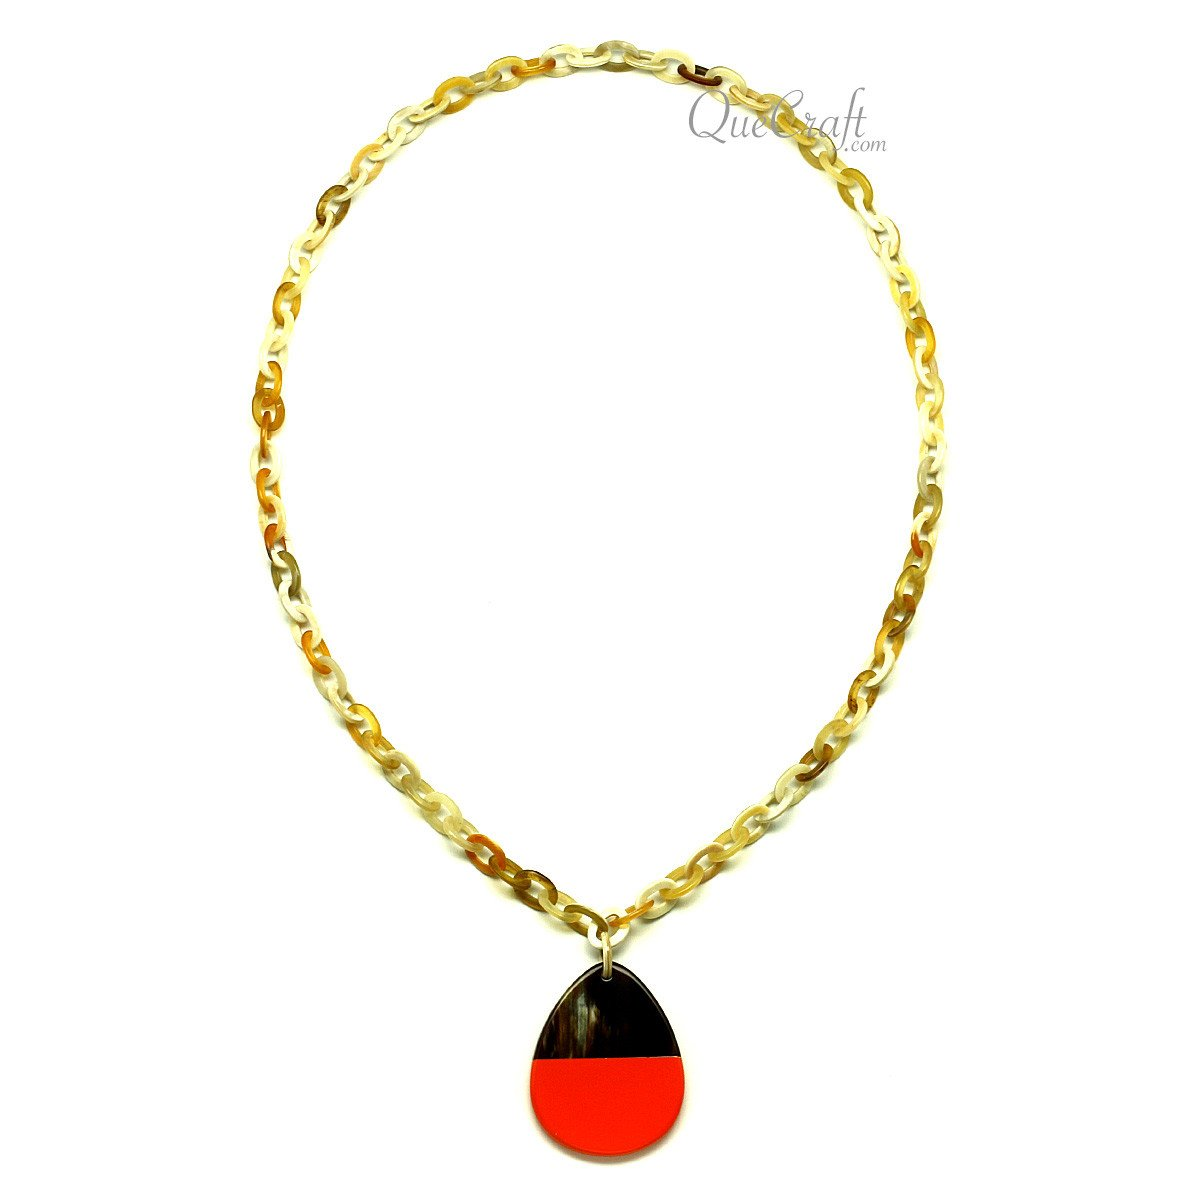 Horn & Lacquer Chain Necklace - Q12841